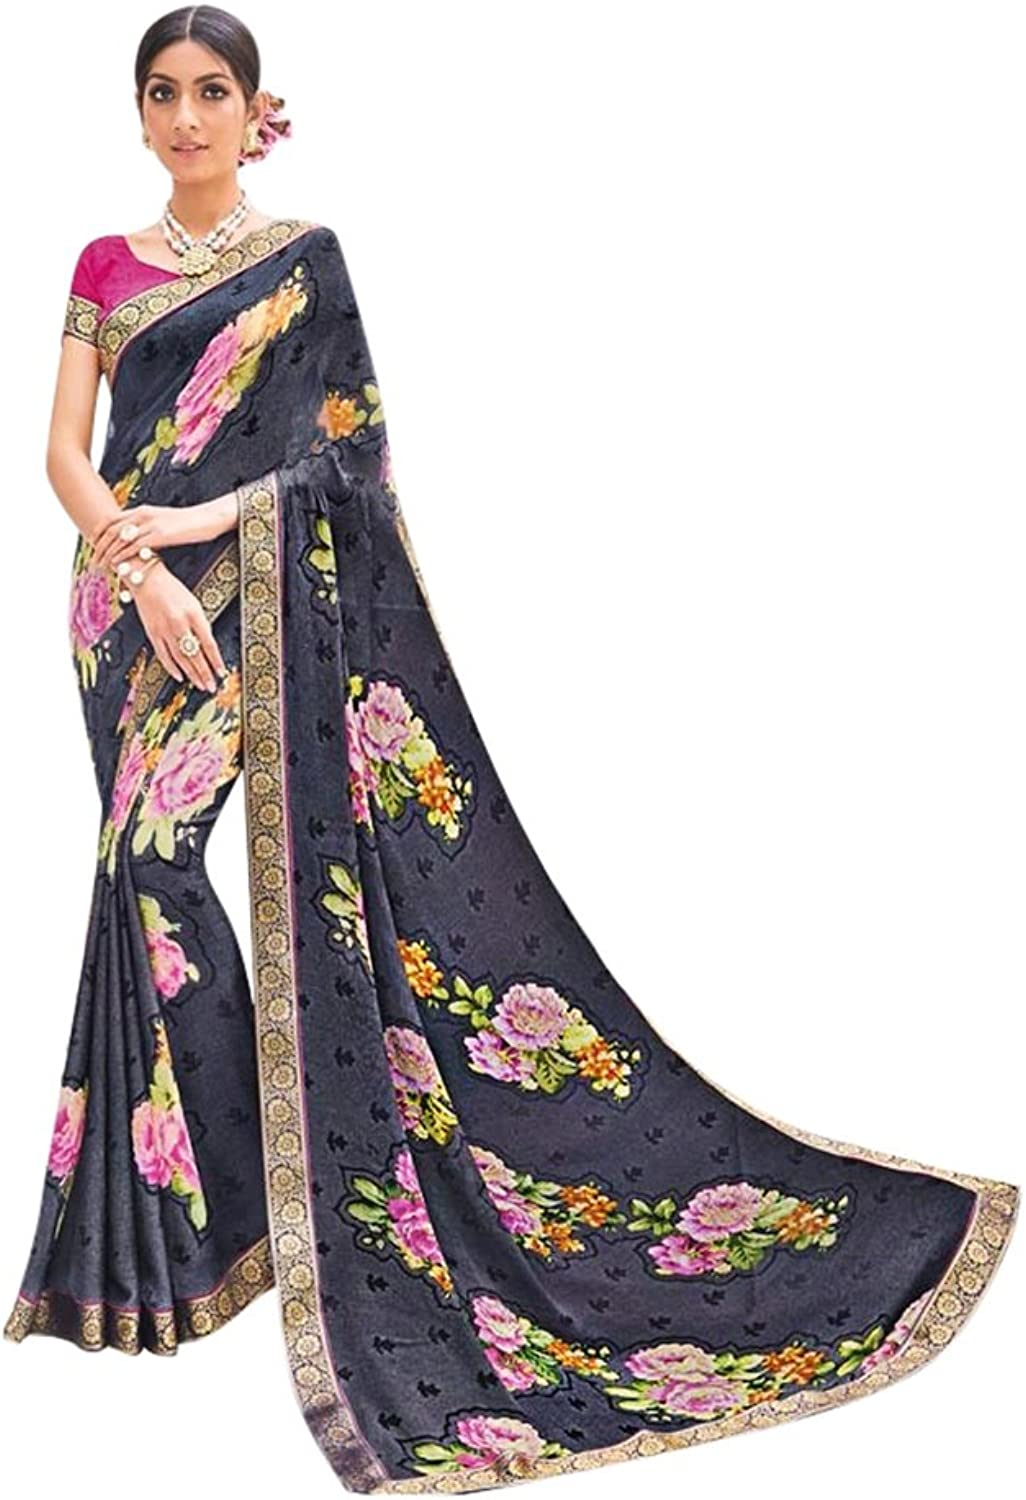 New Launch Formal Indian Saree Sari Collection Blouse Wedding Party Wear Ceremony Women Muslim eid 647 19